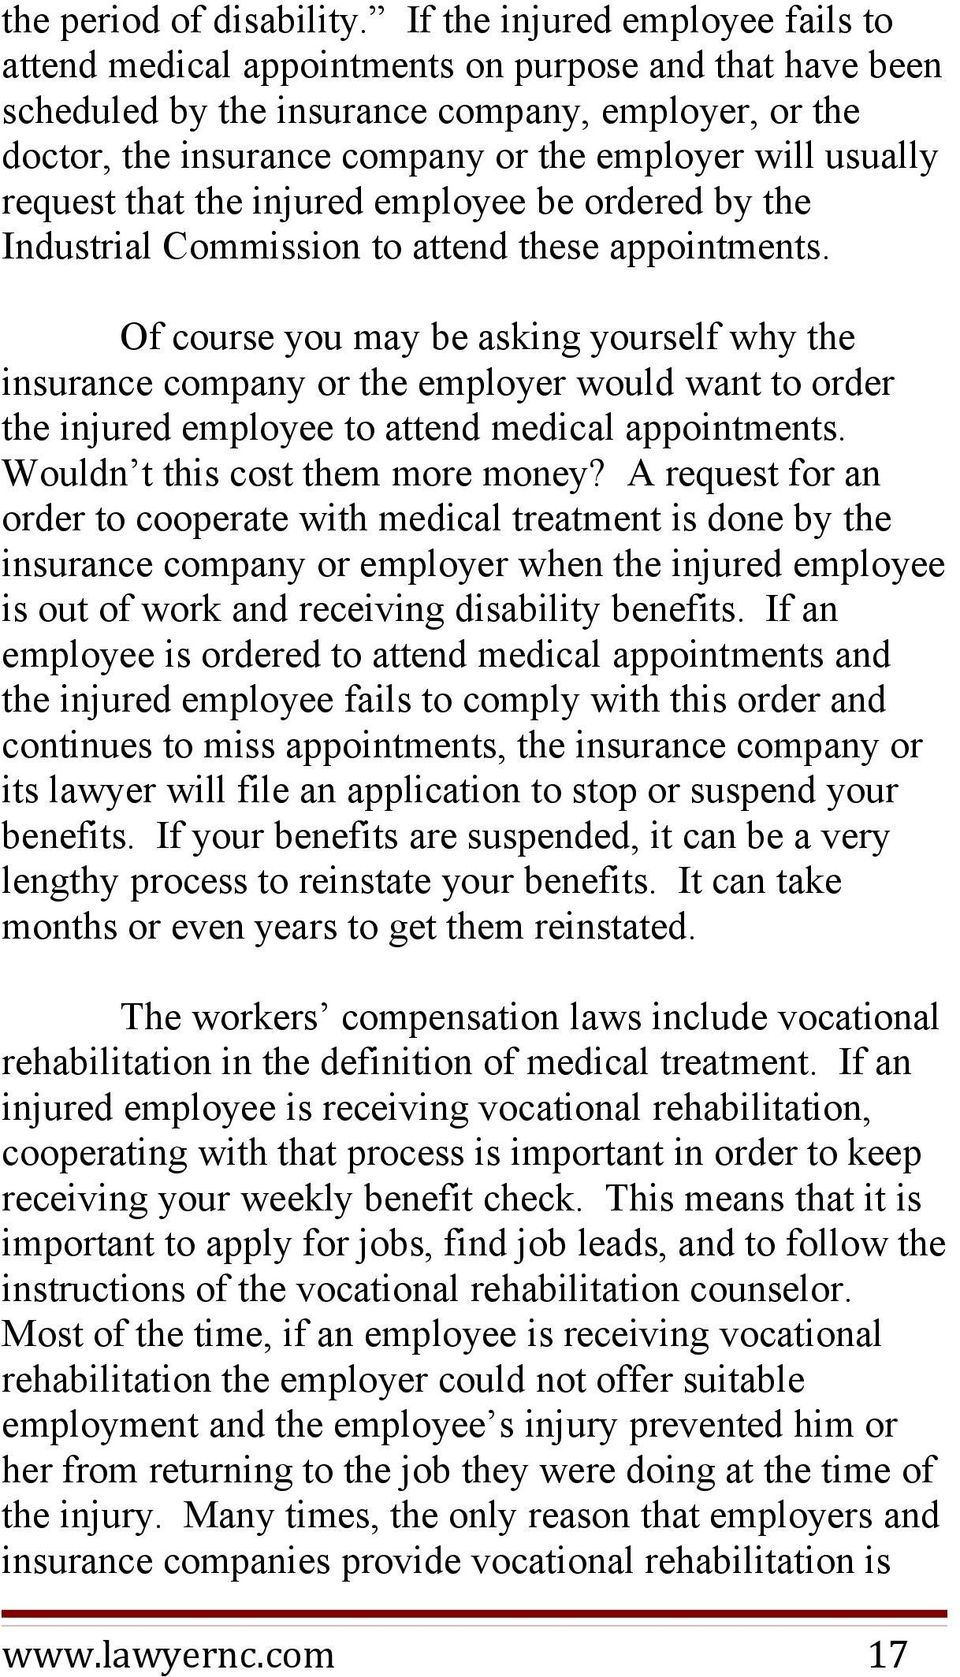 usually request that the injured employee be ordered by the Industrial Commission to attend these appointments.